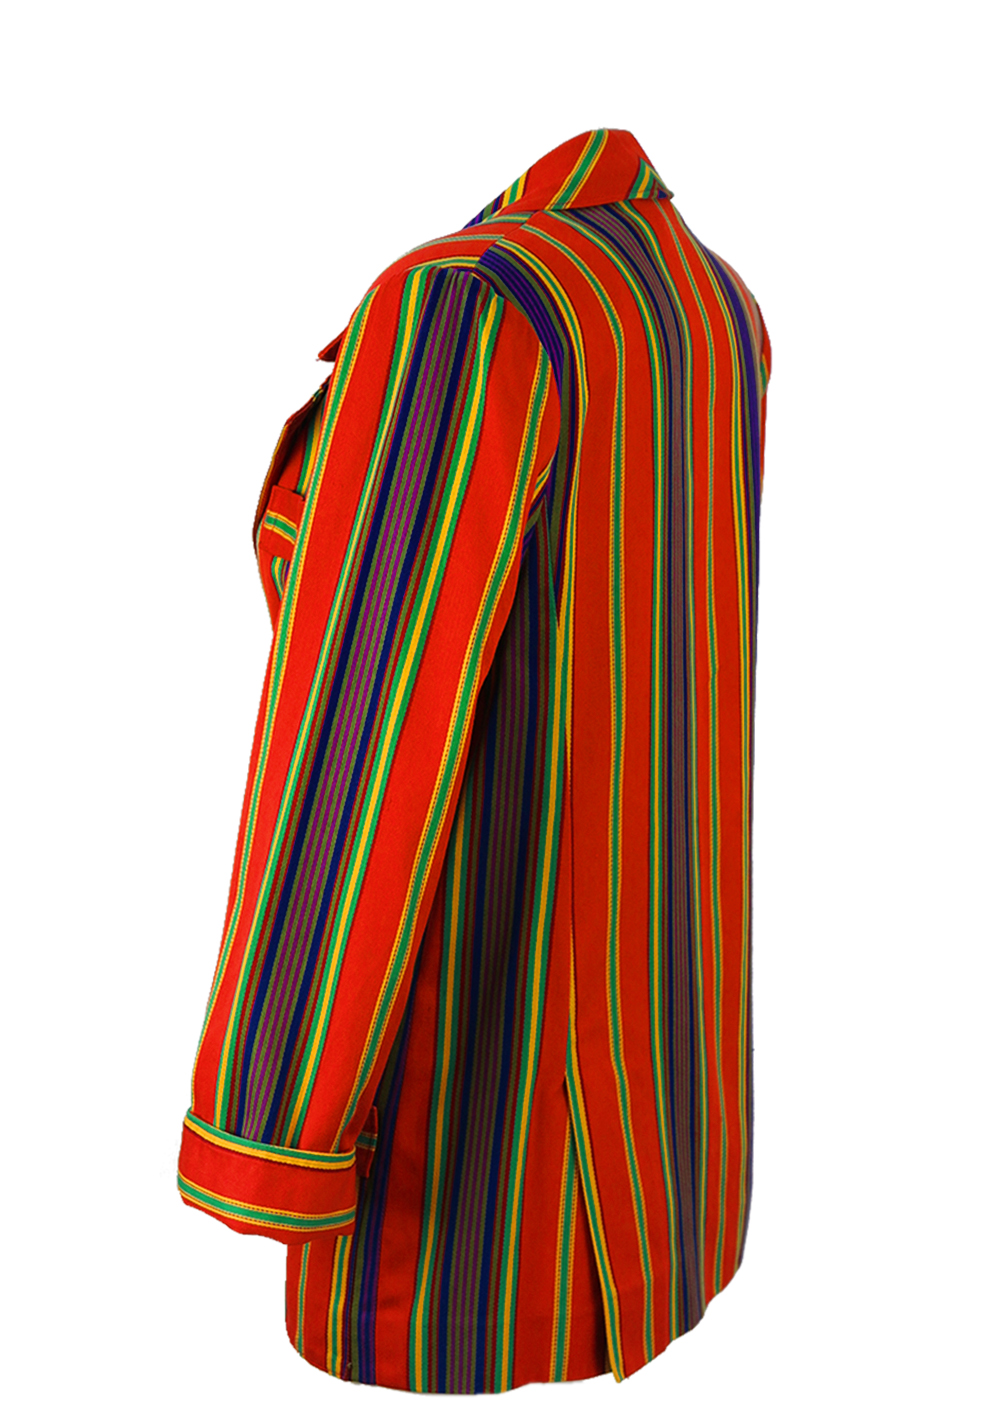 Gianni Versace Red Multi Coloured Striped Blazer S M